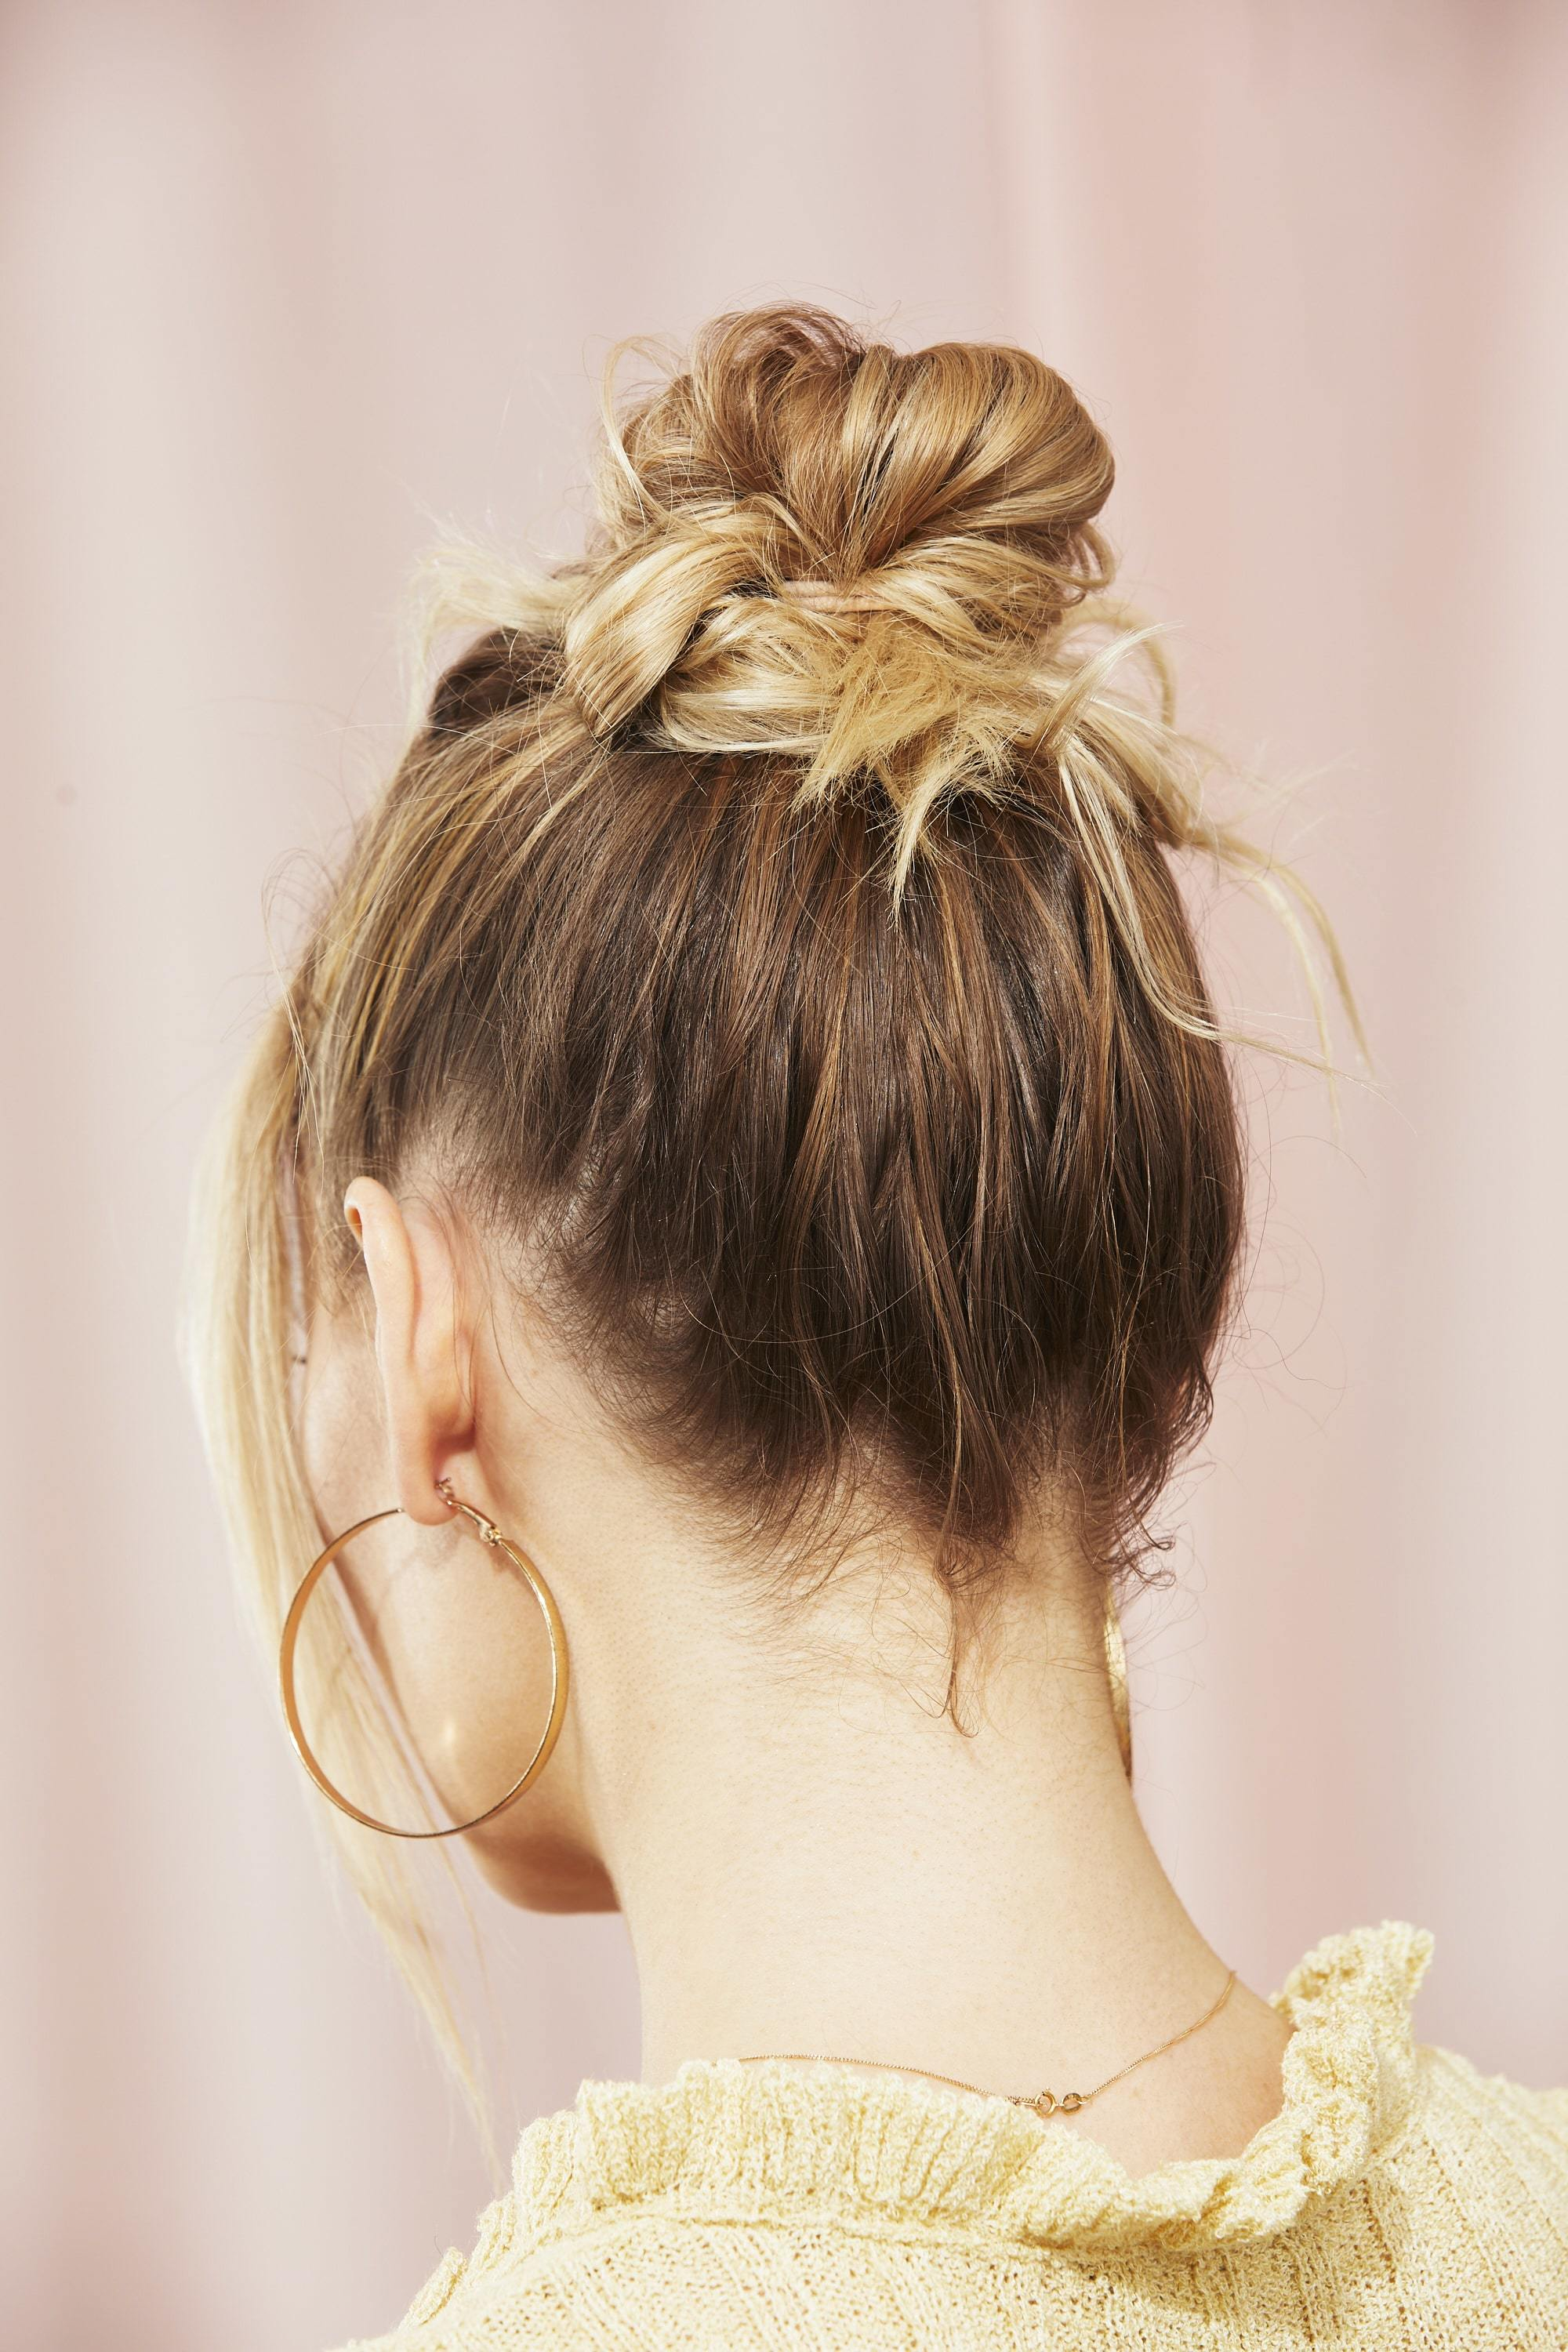 11 Quick And Easy Messy Hairstyles You Can Create At Home